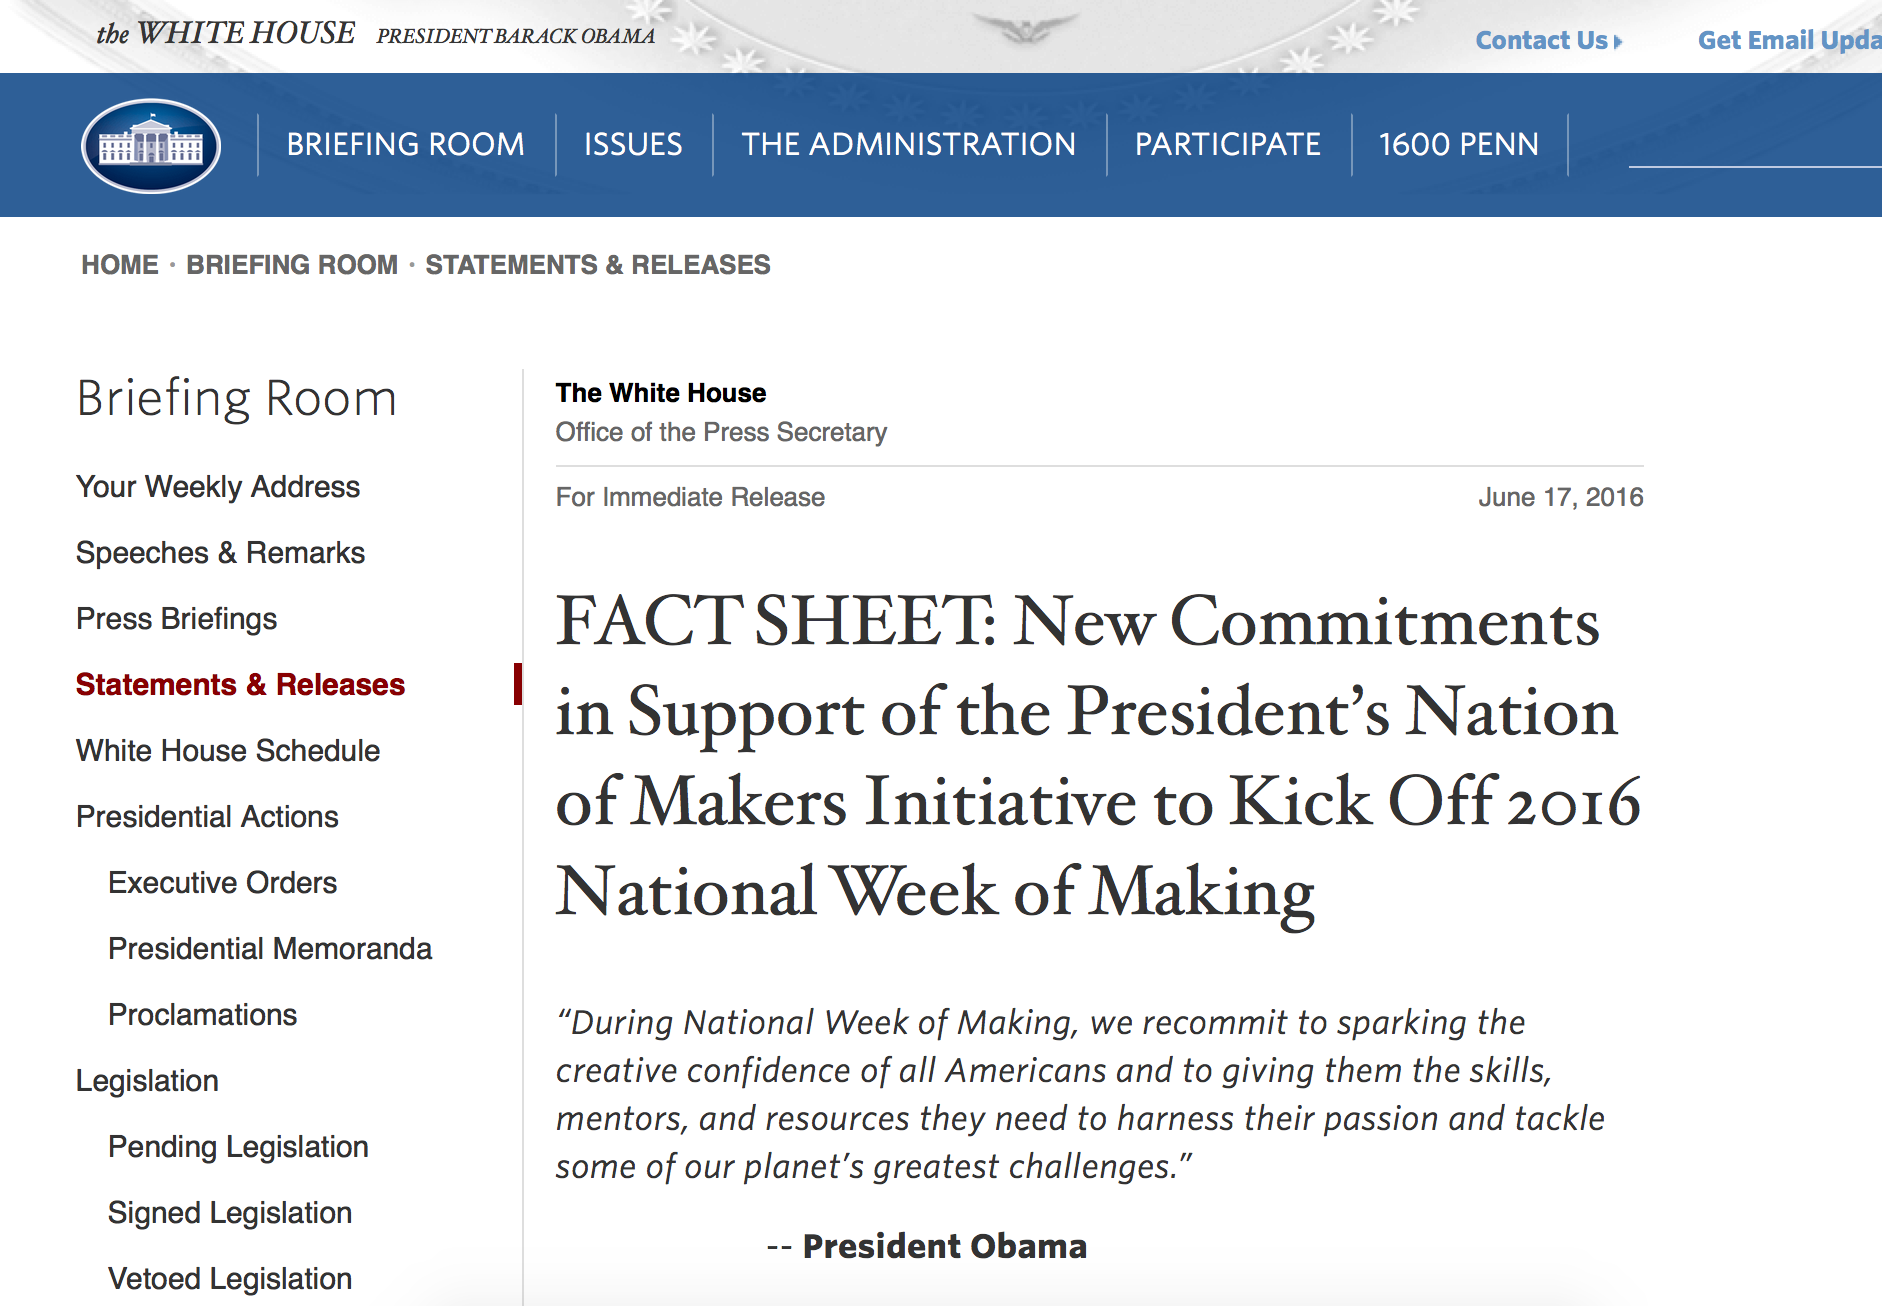 The launch of MakeItGo was featured in the White House fact sheet to launch the President's National Week of Making